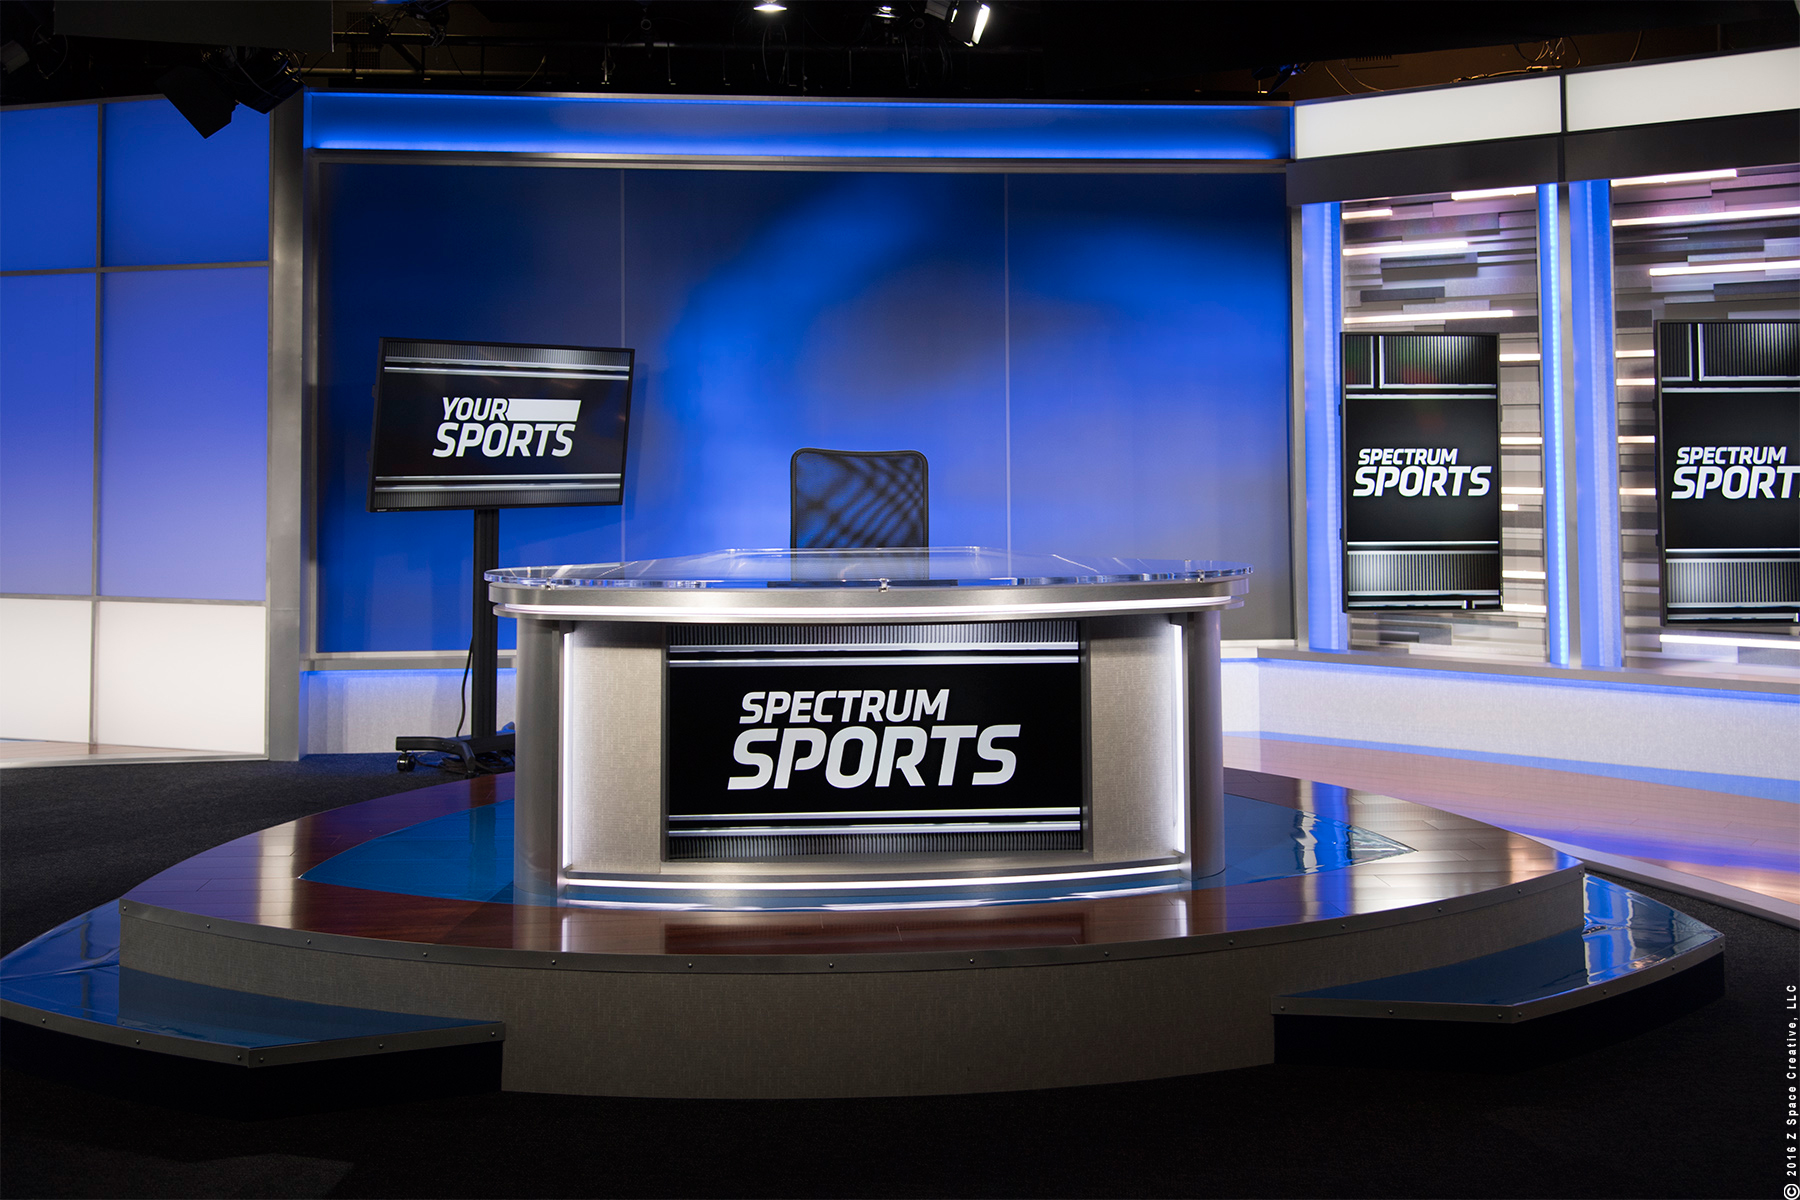 ncs_spectrum-sports-tampa-studio_0001